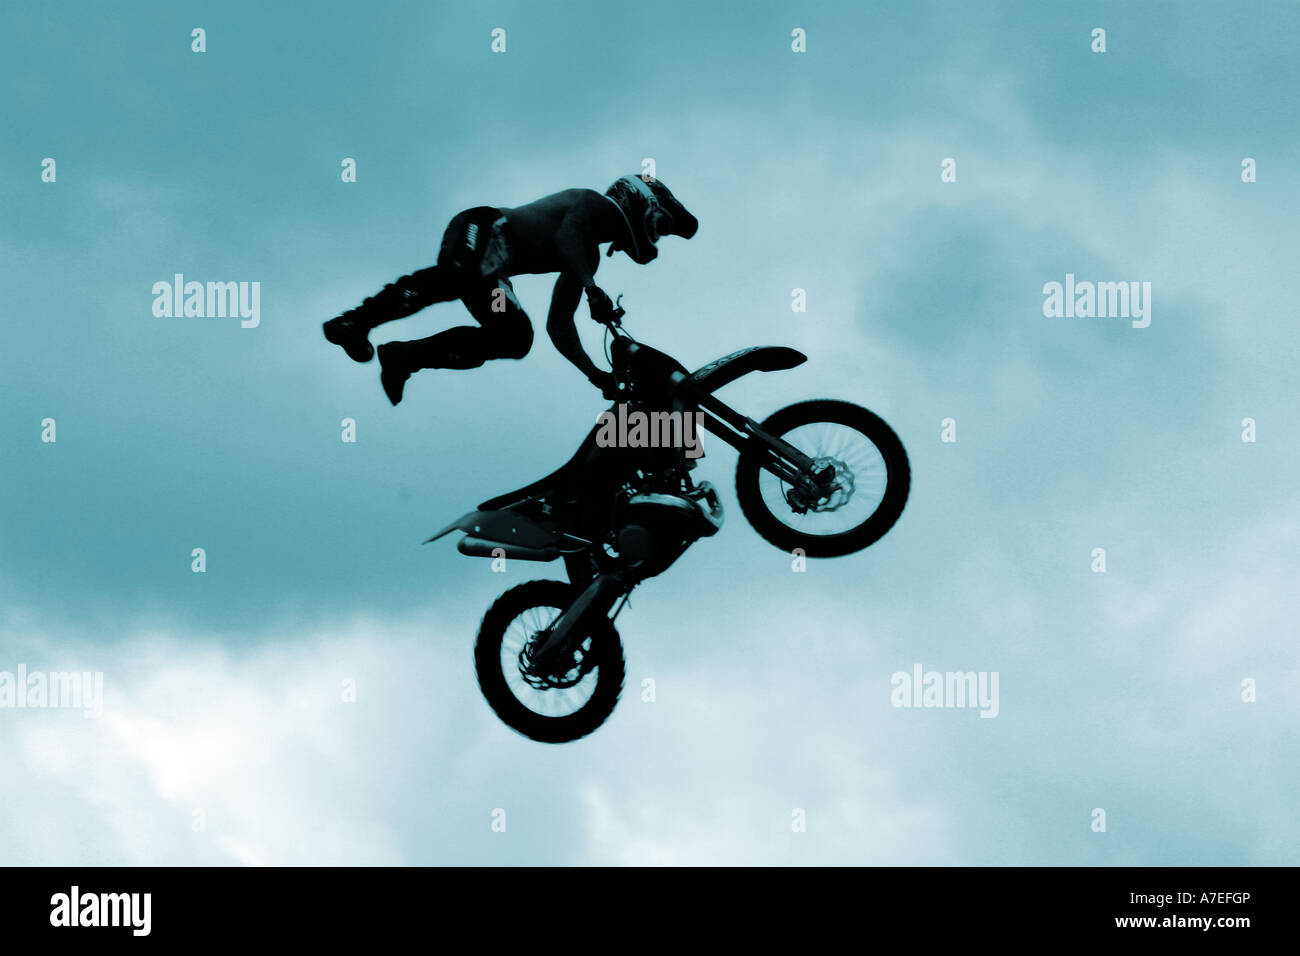 Two Motocross Riders In The Air Stock Photo, Picture And Royalty ...